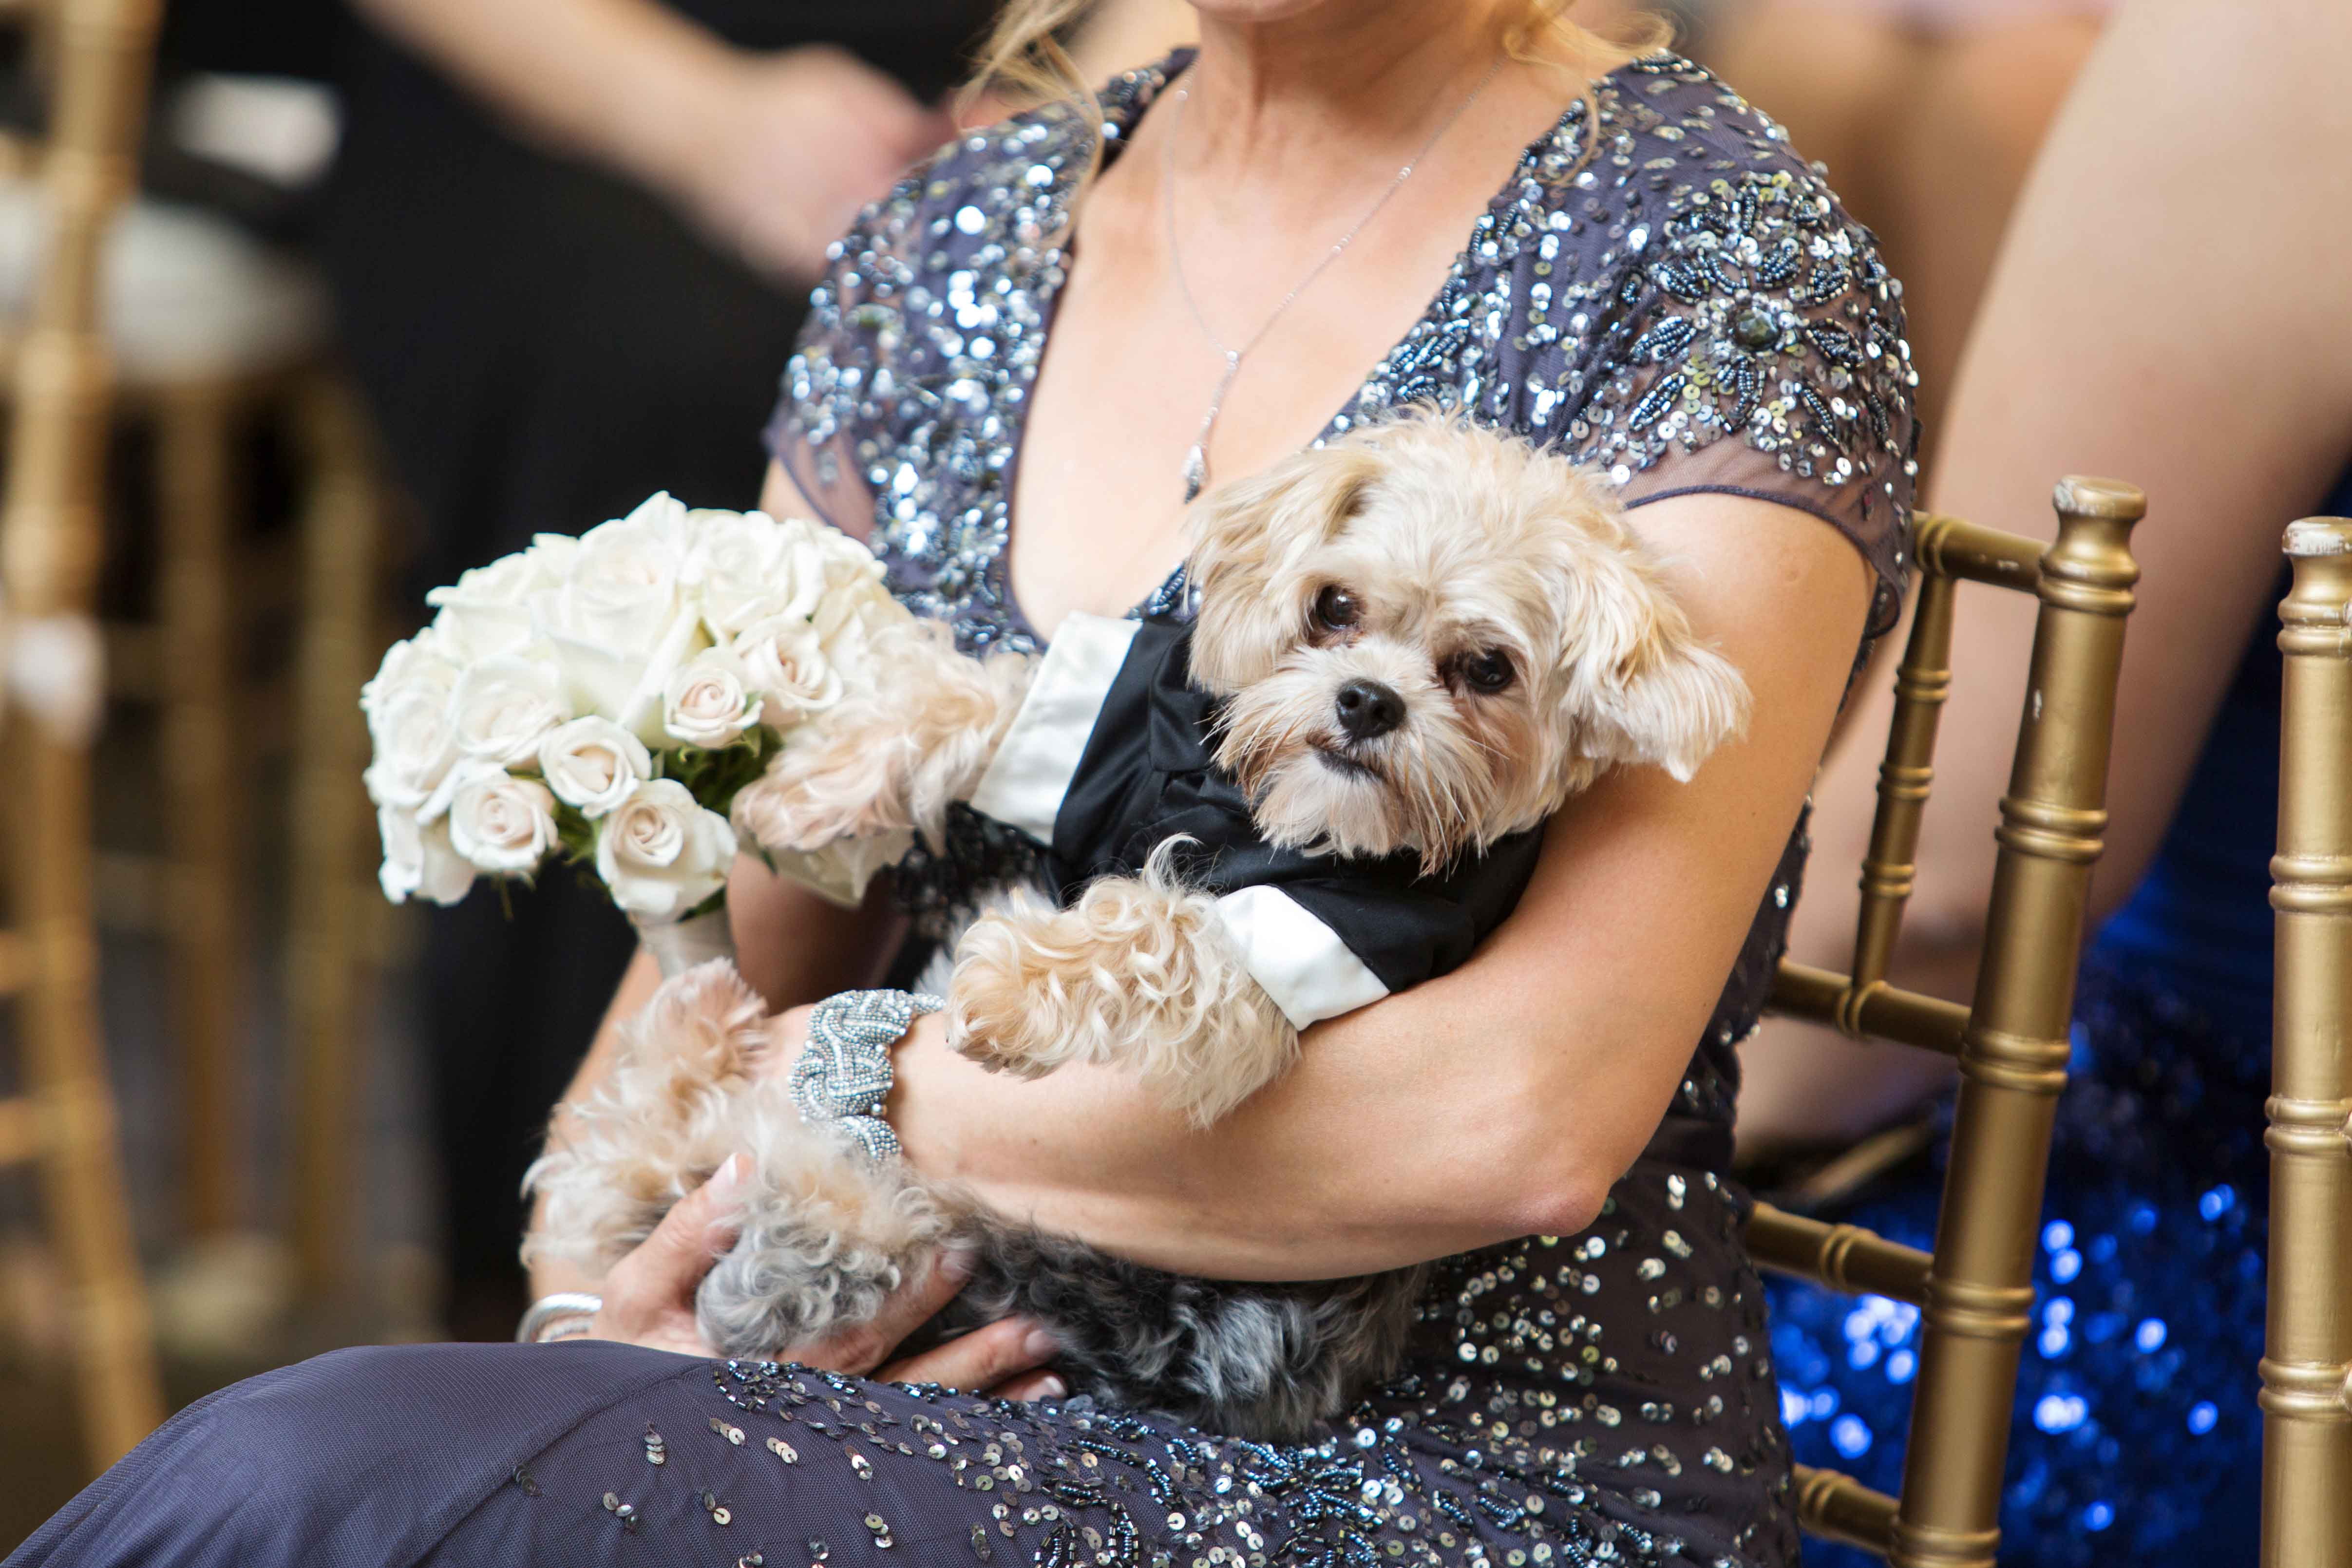 Wedding guest holding dog at ceremony